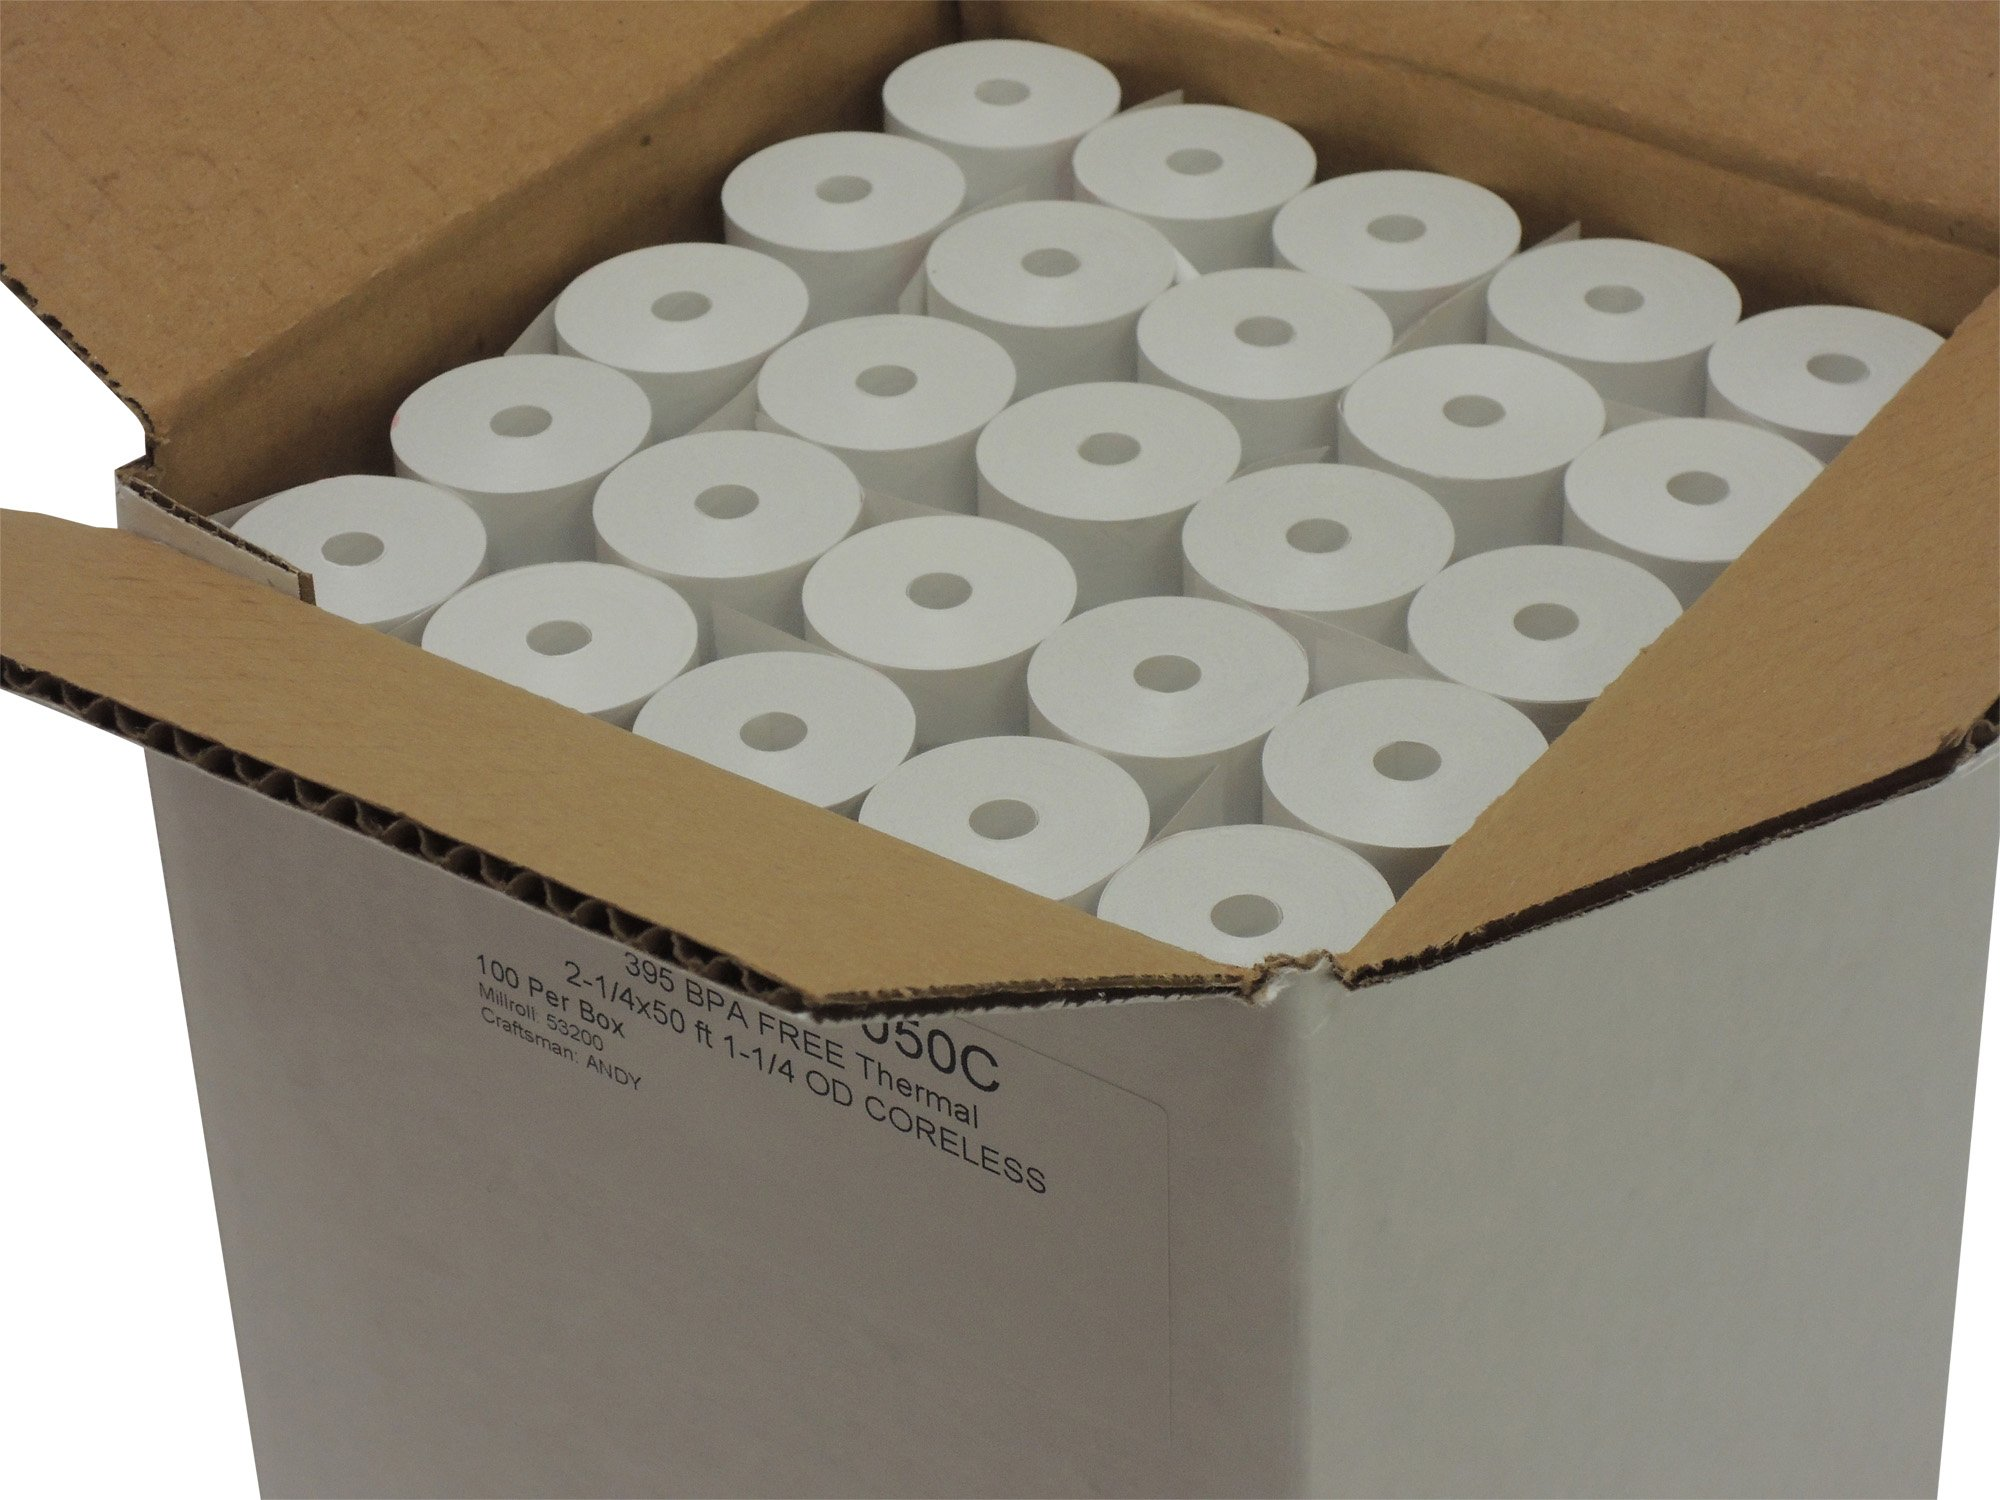 Thermal Paper 2-1/4'' x 50 ft, 1.25'' / 30mm Diameter, CORELESS, BPA Free, 100 Rolls by POS1 (Image #5)